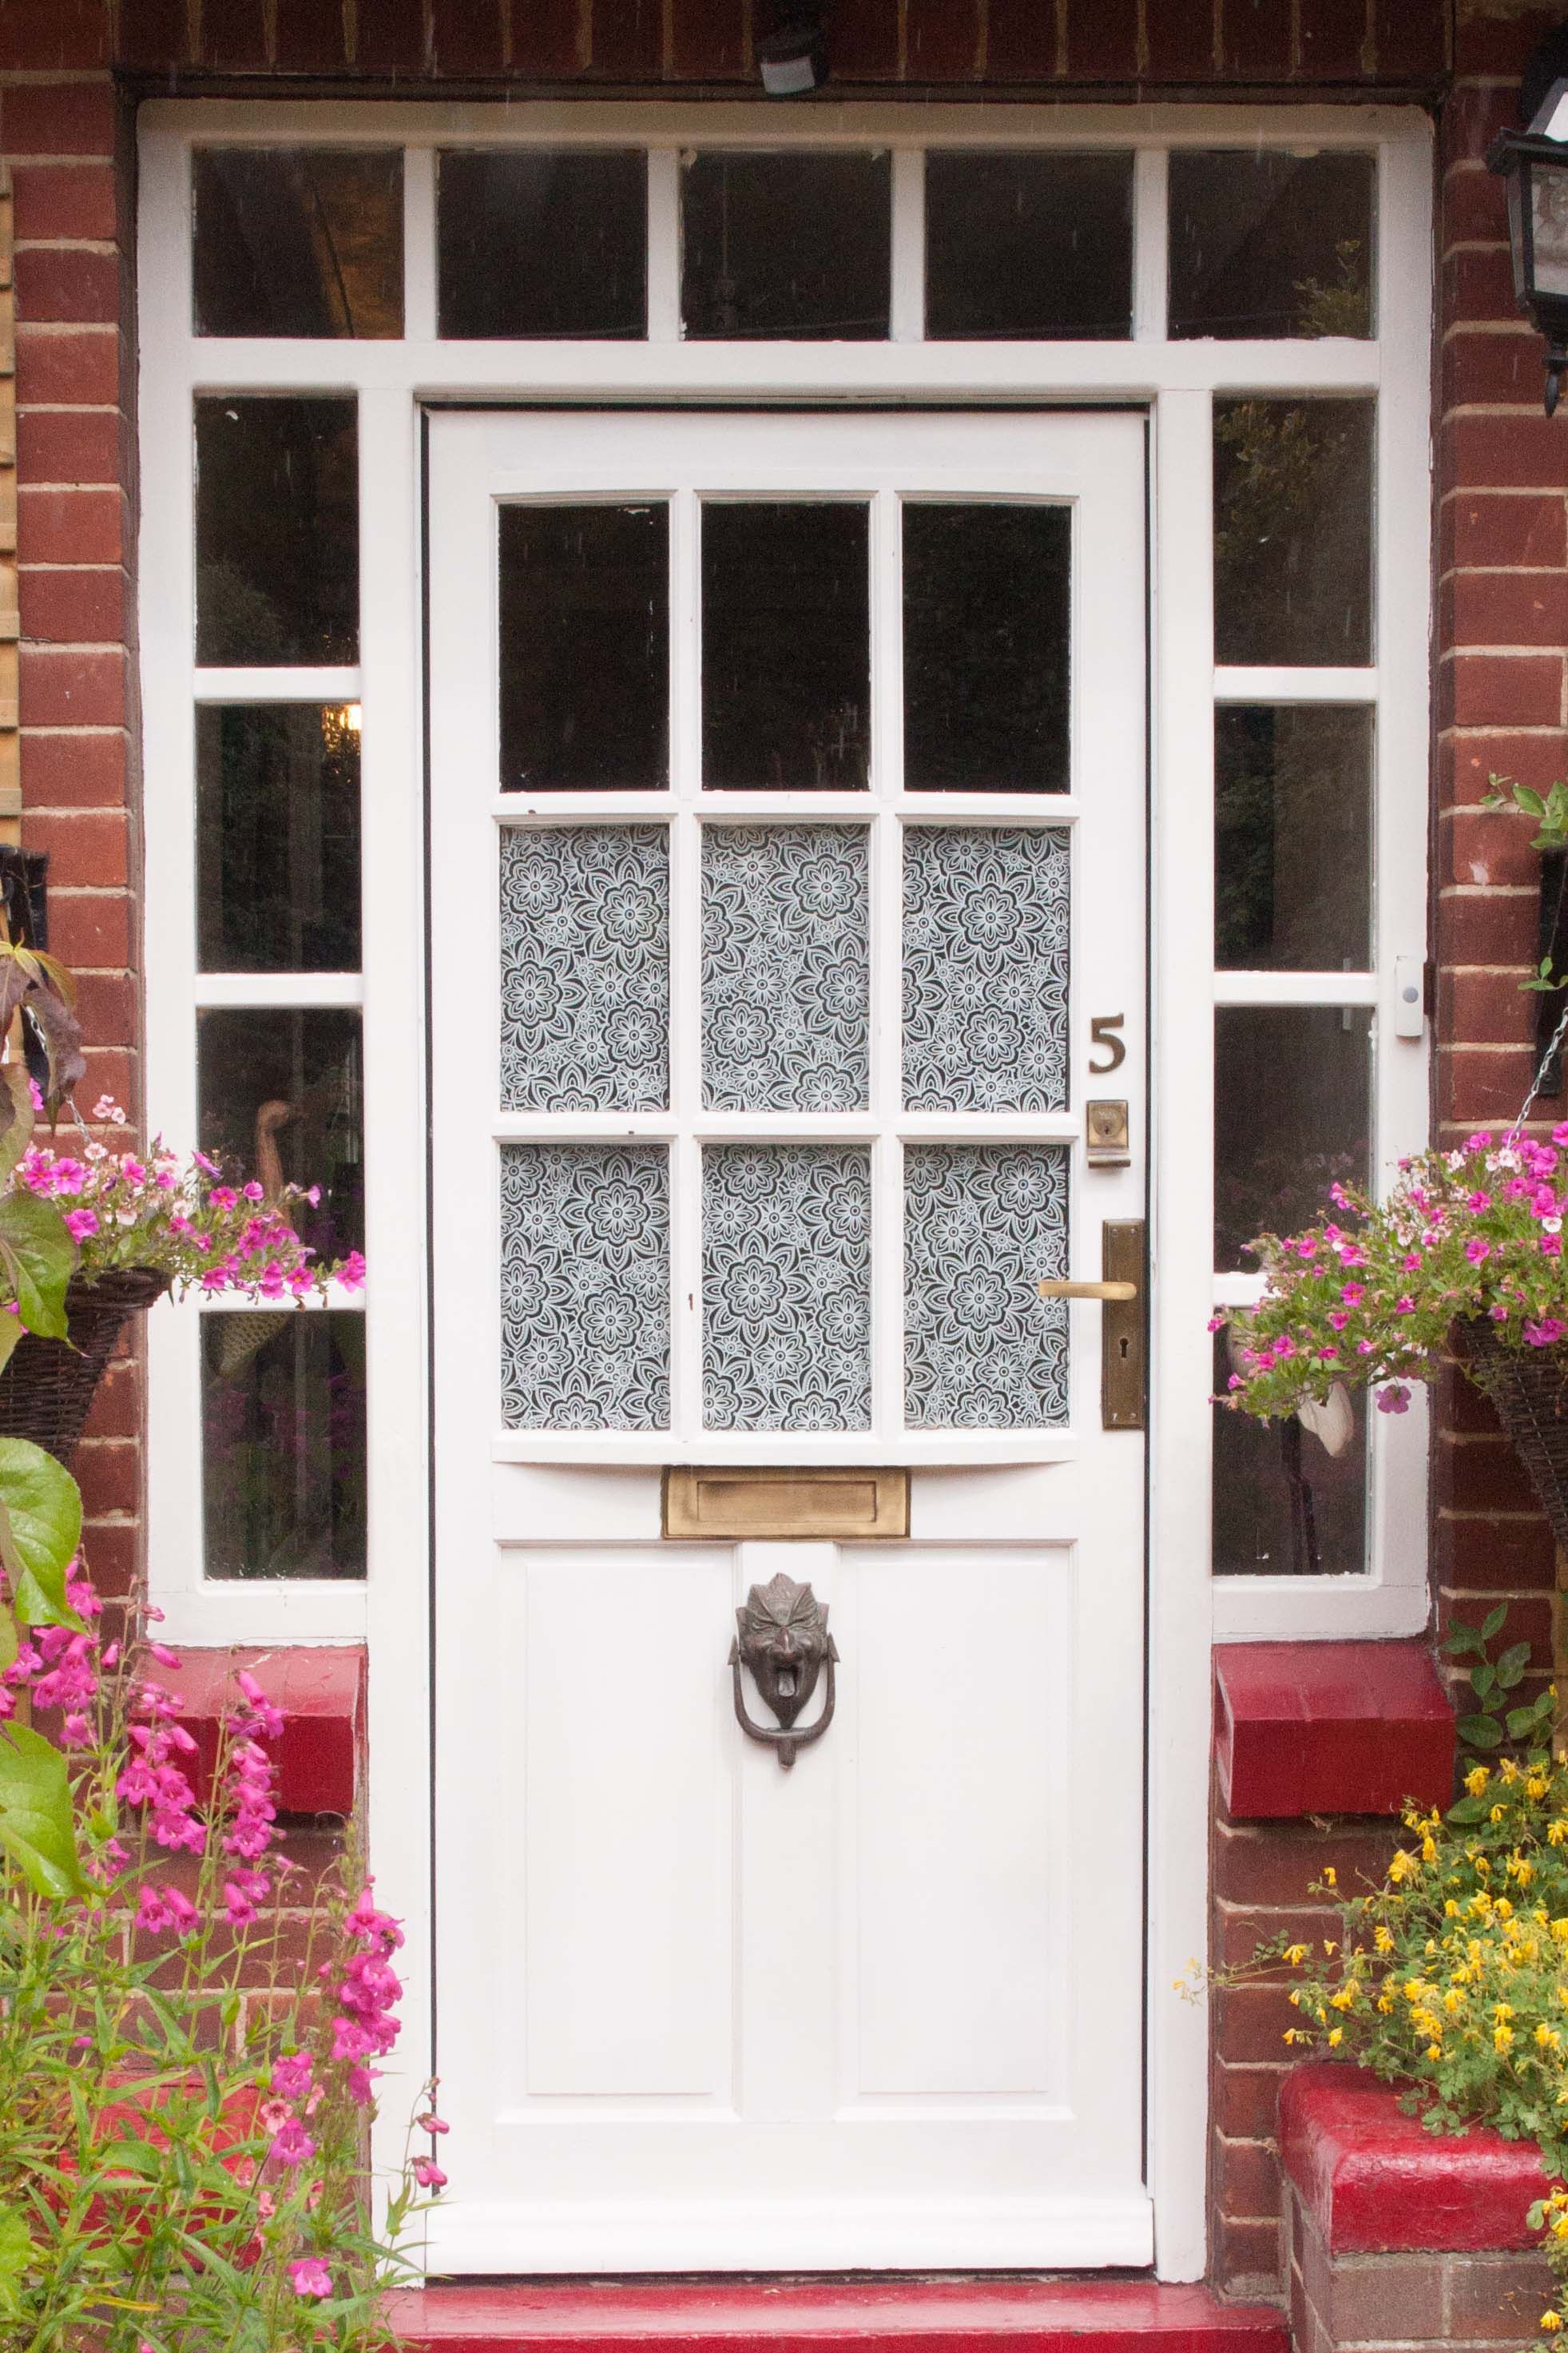 Charmant Cover Panes Of Your Front Door To Add A Little Privacy Or Simply For  Decoration. Our Collection Of D C Fix® Self Adhesive And Static Cling Window  Films Is ...